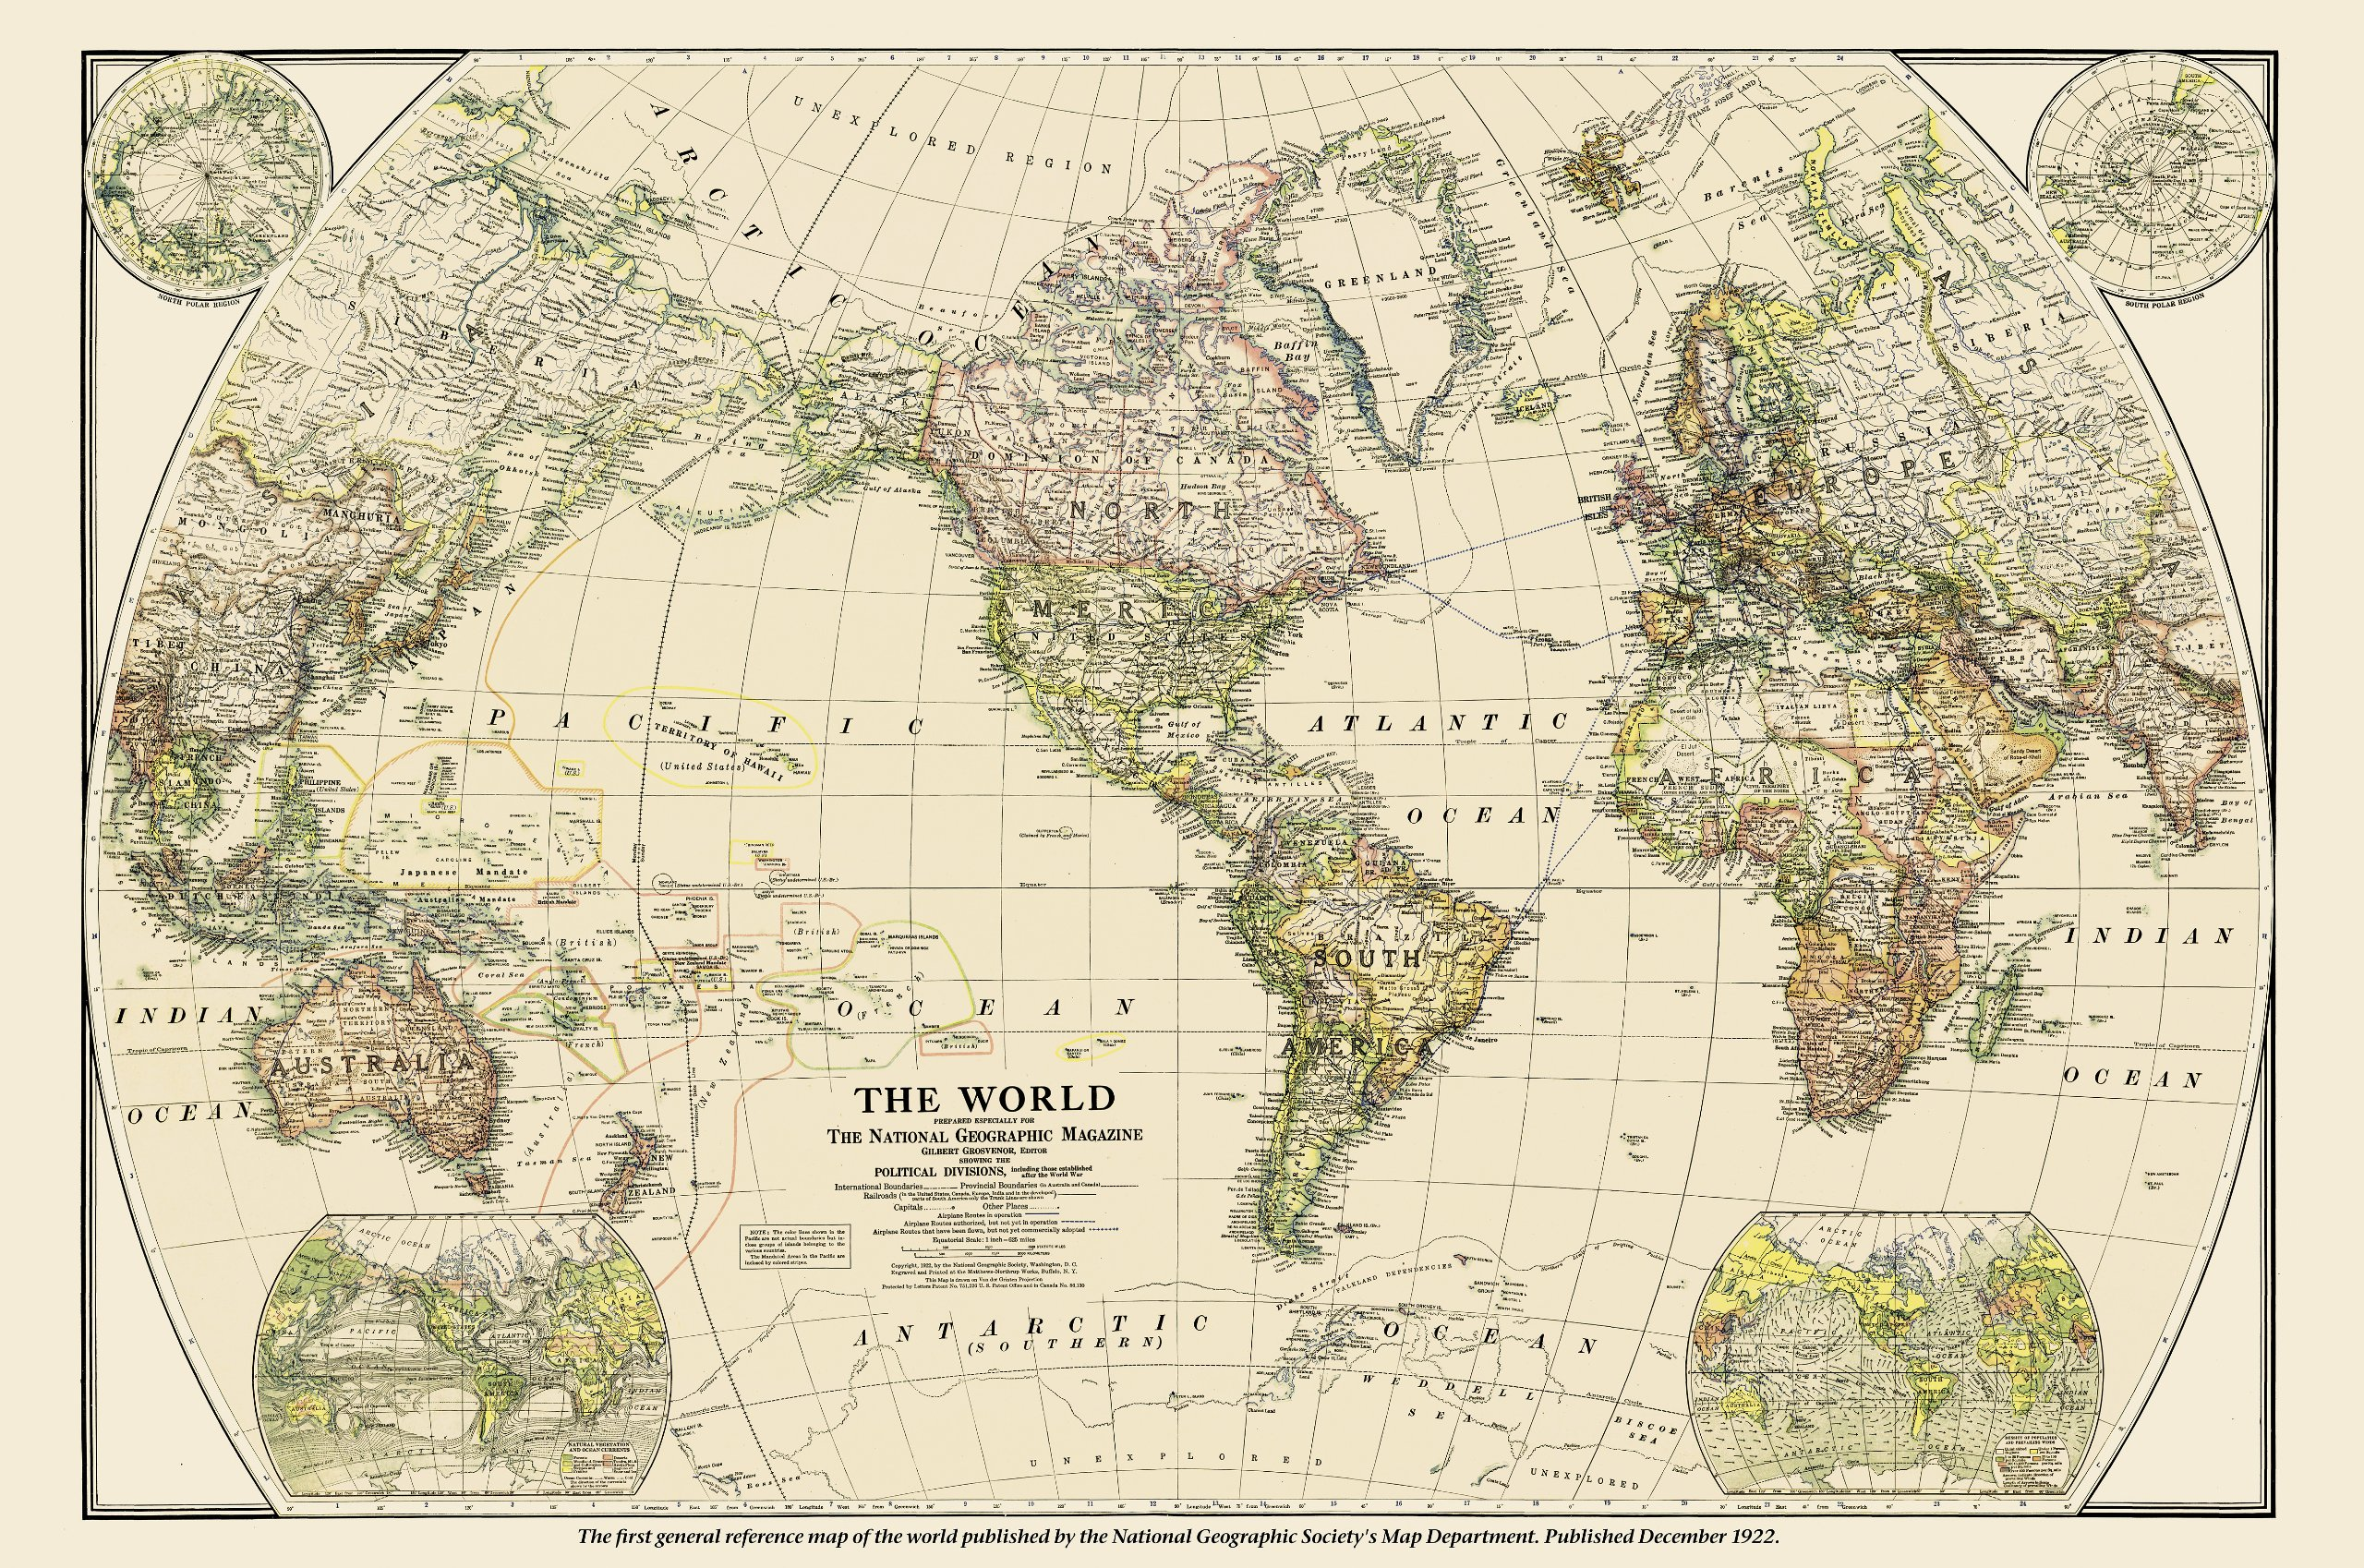 National geographic ngs 125th anniversary world map wall map national geographic ngs 125th anniversary world map wall map laminated 46 x 305 inches national geographic reference map national geographic maps gumiabroncs Image collections